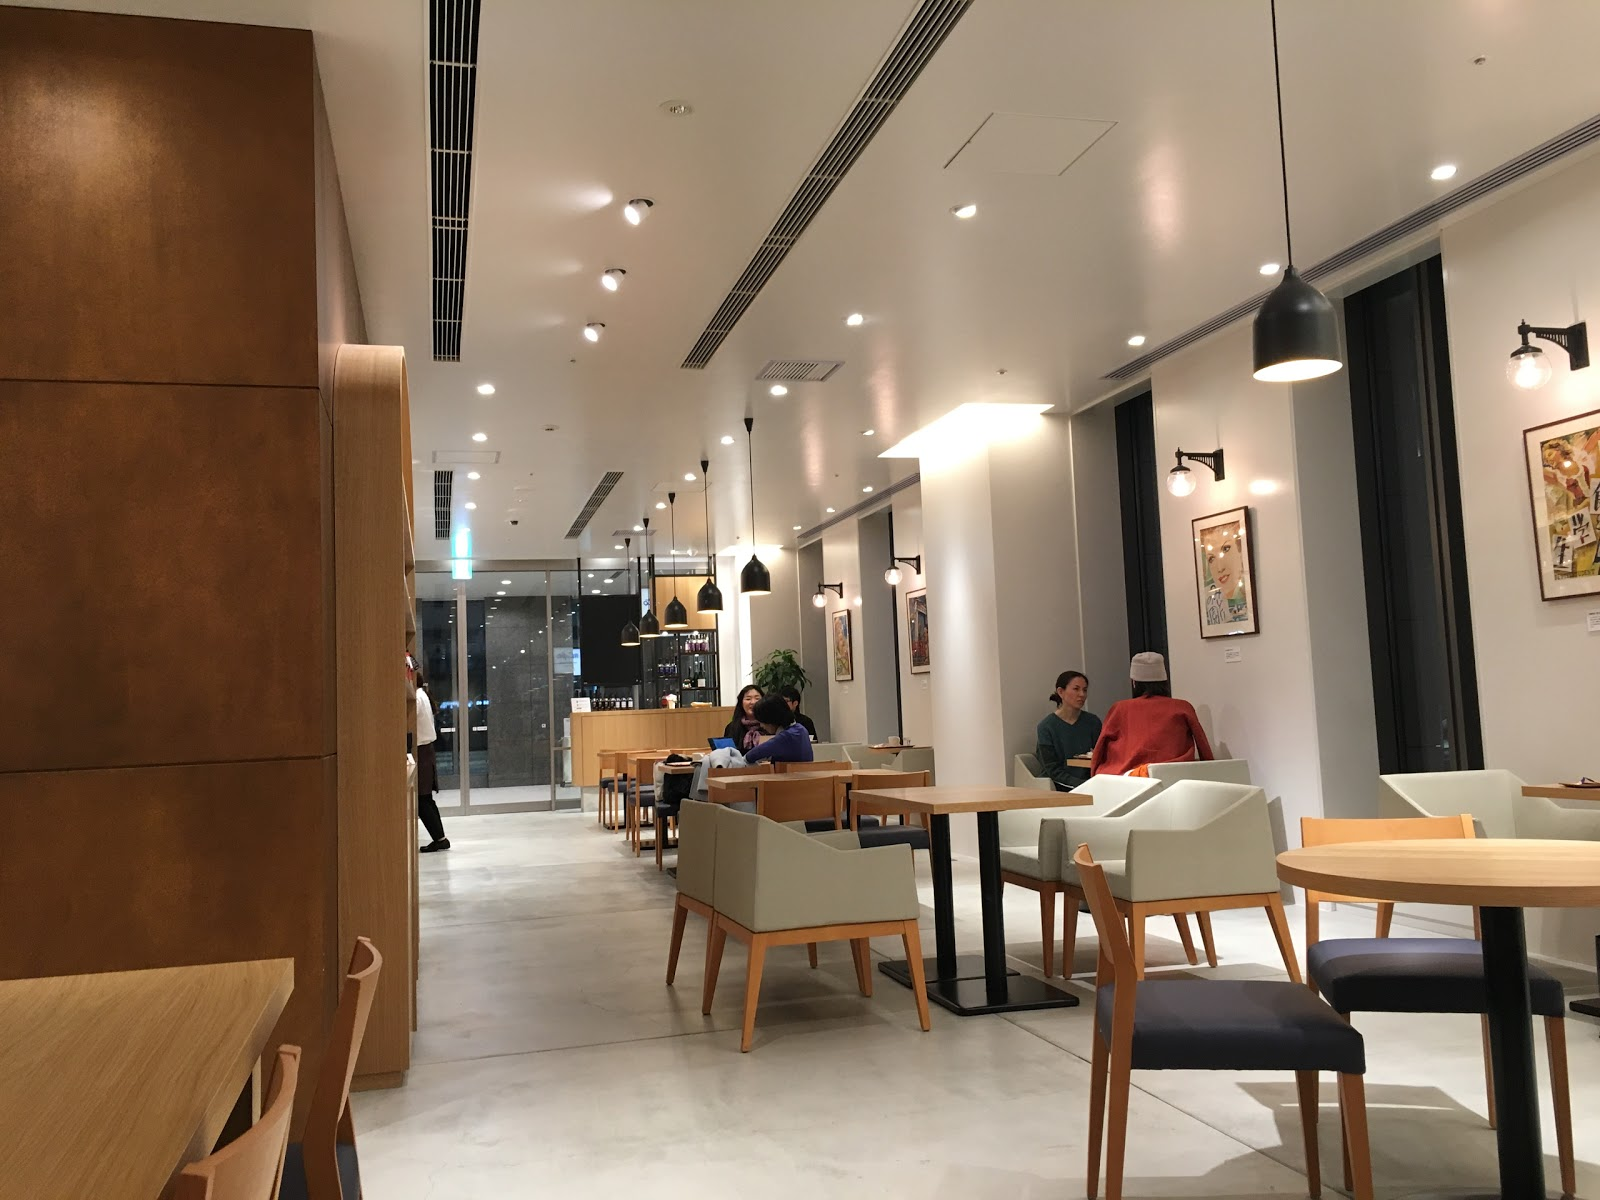 IDEA BEANS CAFE by Mi Cafetoのイメージ